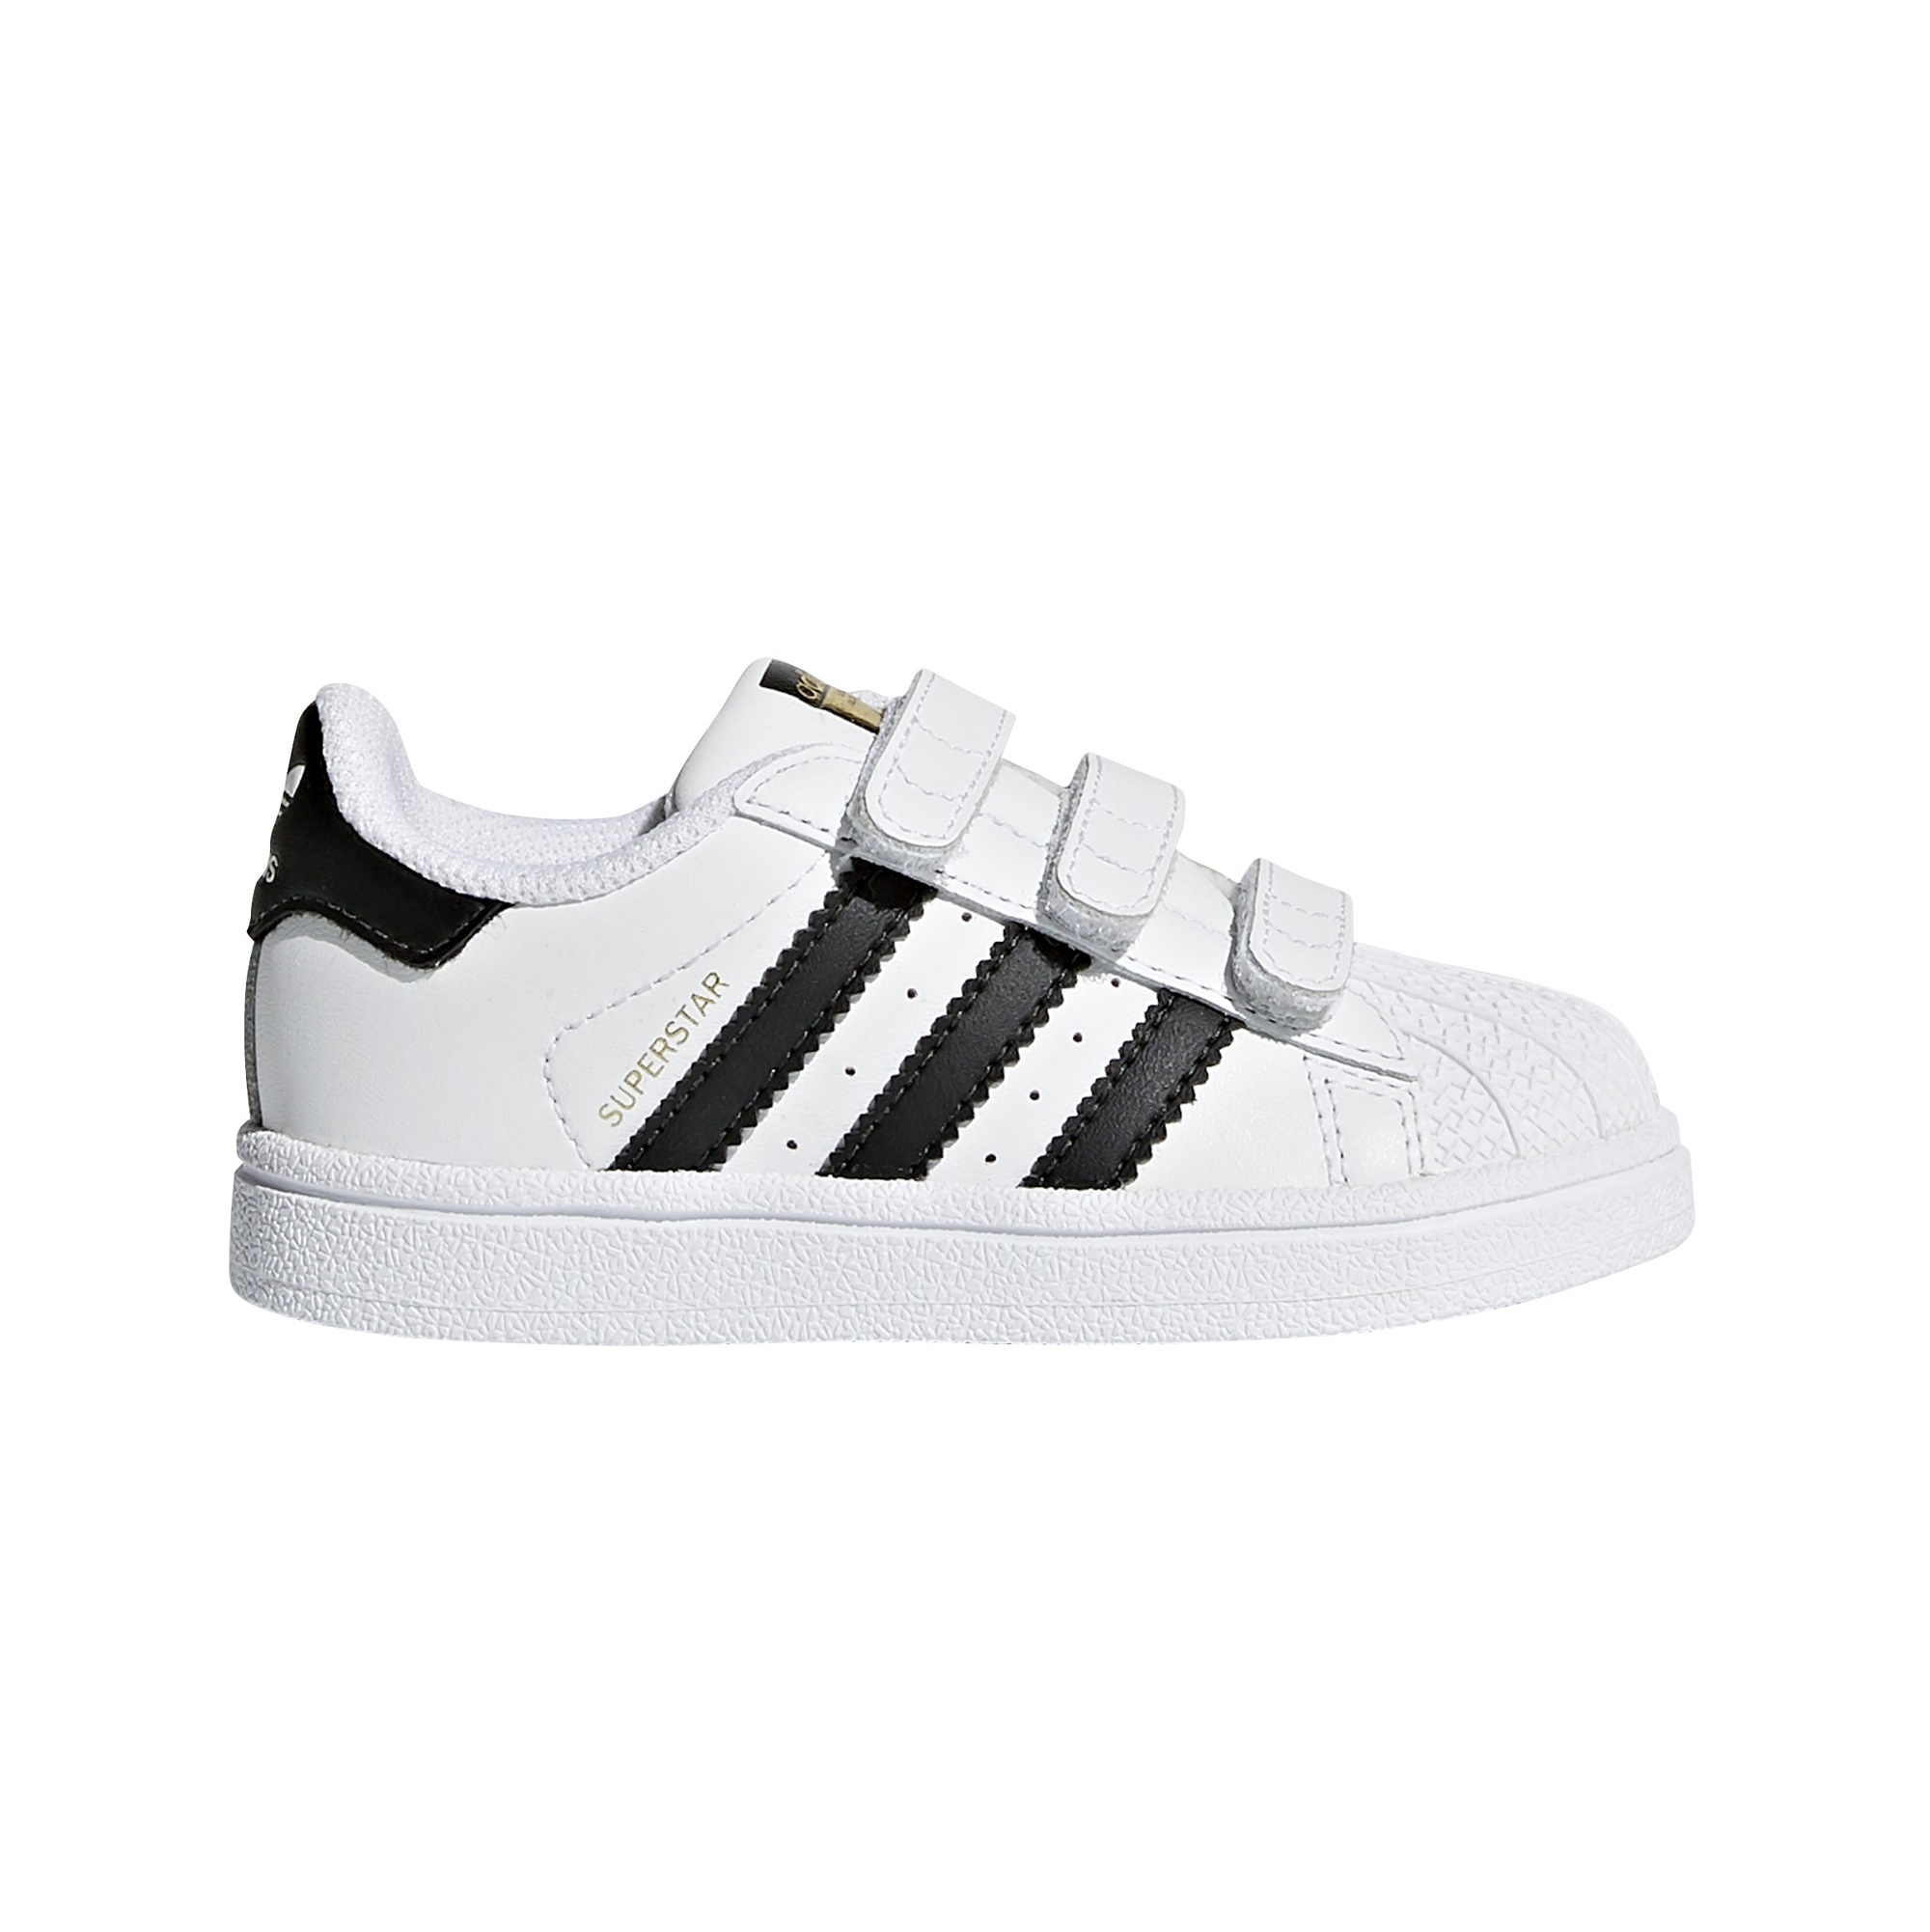 466e1addfe3 Adidas Superstar CF Infants Negra - manelsanchez.pt